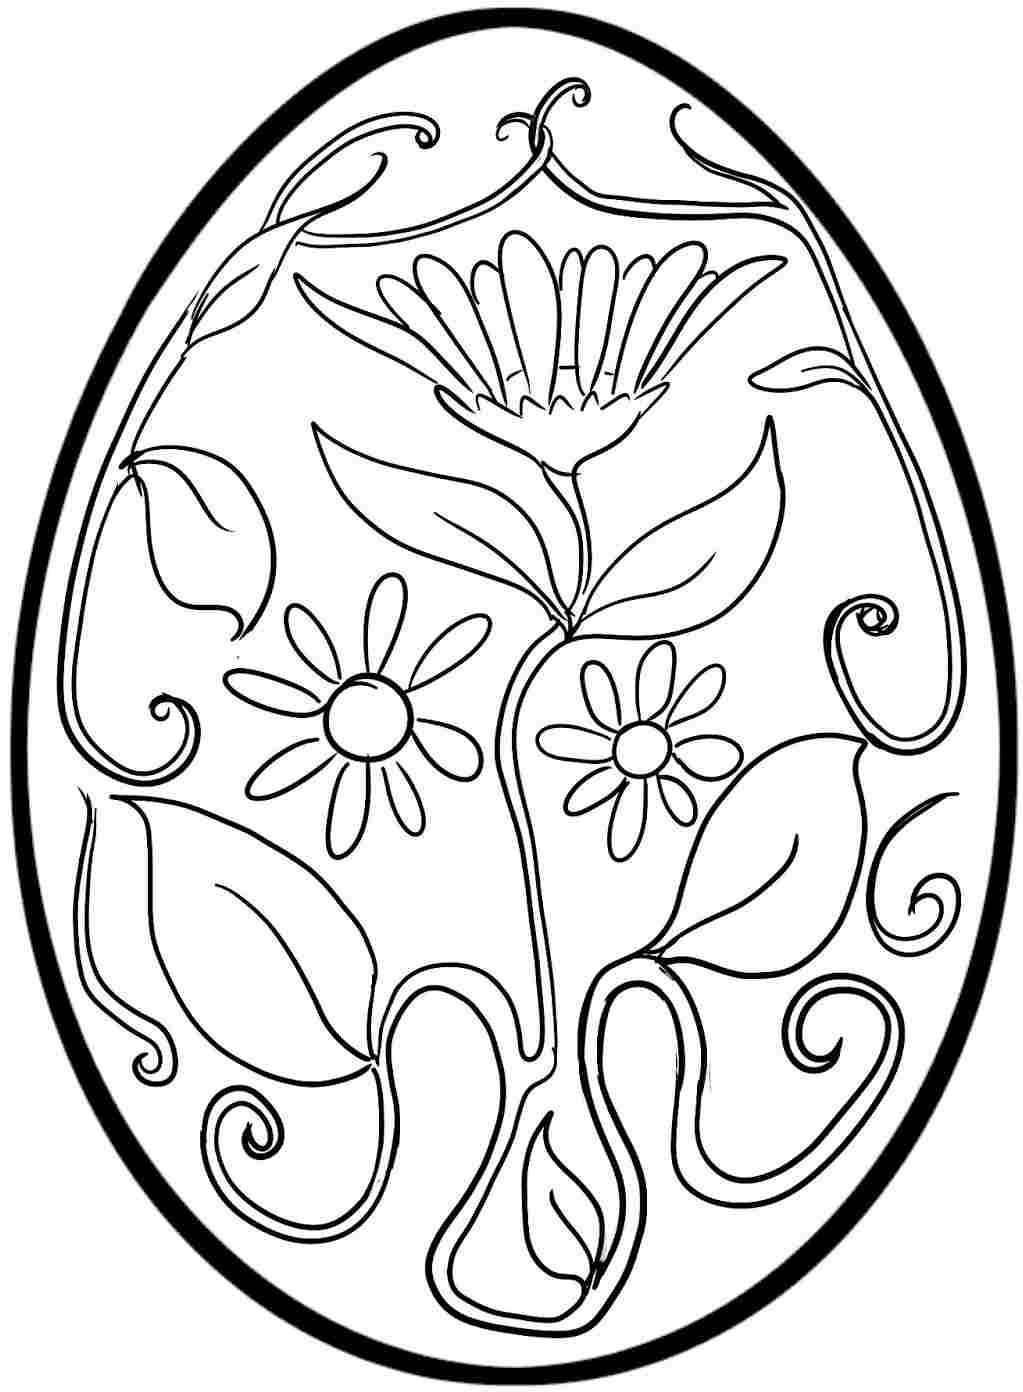 Easter egg coloring pages - Easter Egg Colouring Pages Free For Kids Boys